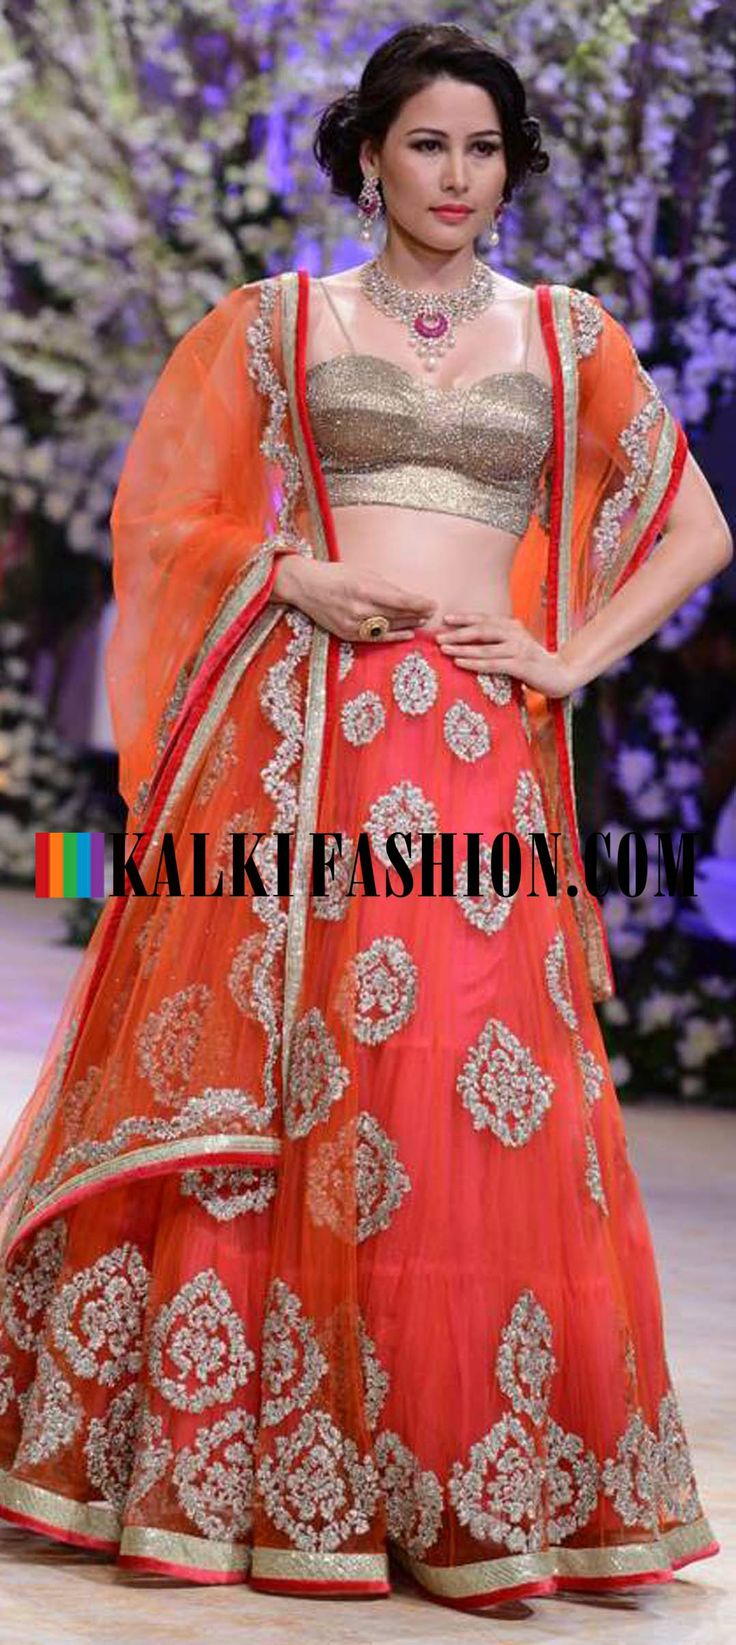 http://www.kalkifashion.com/designers/jyotsna-tiwari.html Urnashi Rautela and other models walk the ramp for Jyotsna Tiwari at Indian Bridal Week NOV 2013 at Mumbai 56